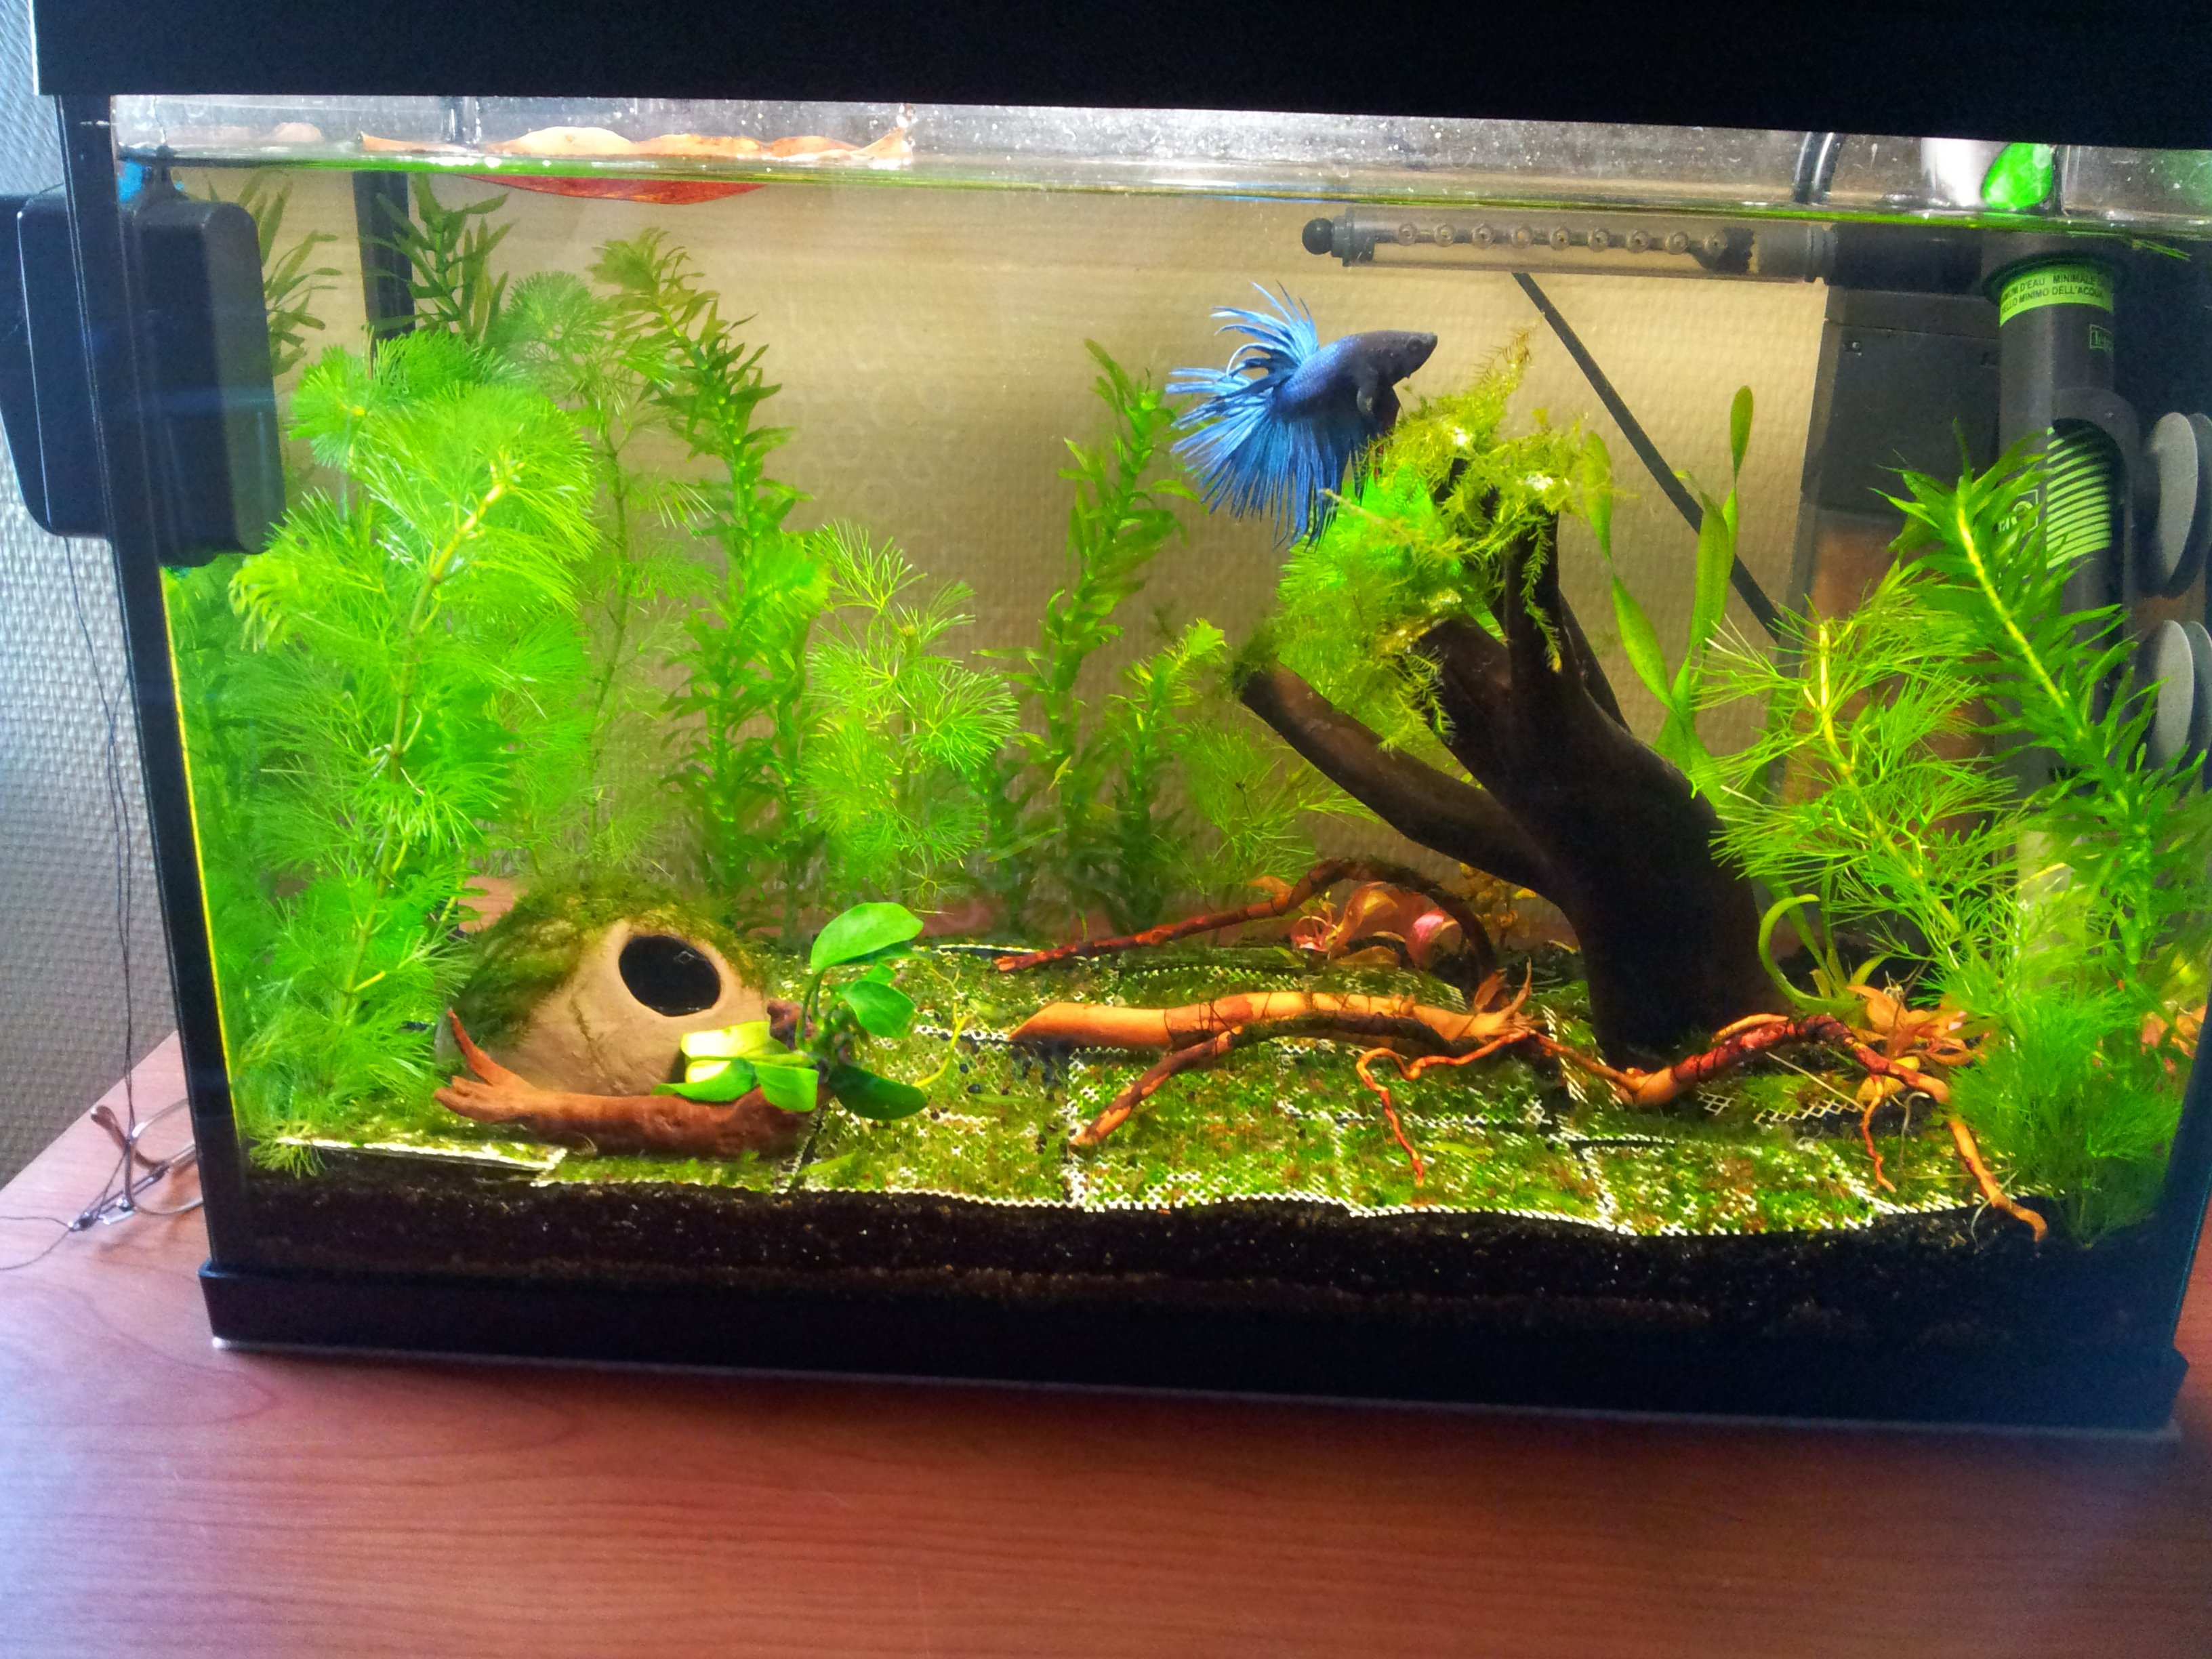 Nouvelle version de l'aquarium de 20 litres pour le Betta Splendens